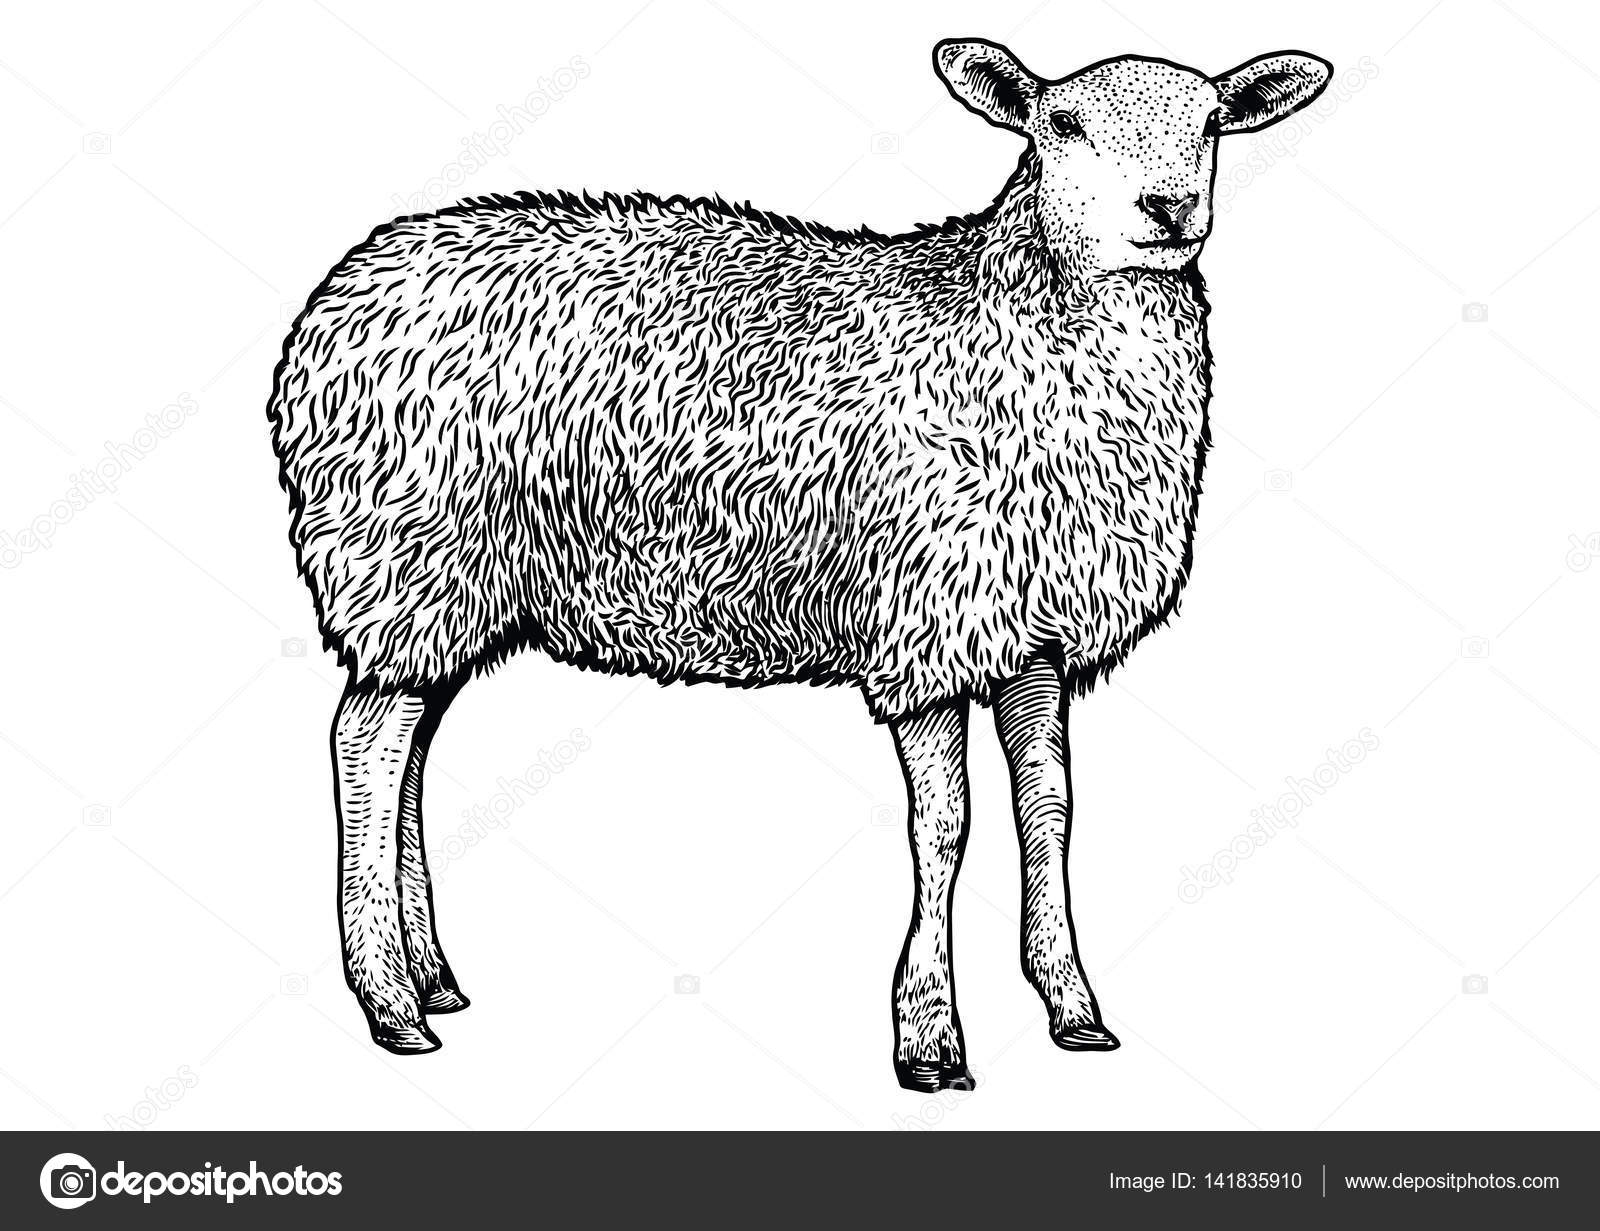 Sheep Illustration Drawing Engraving Line Art Realistic Stock Vector